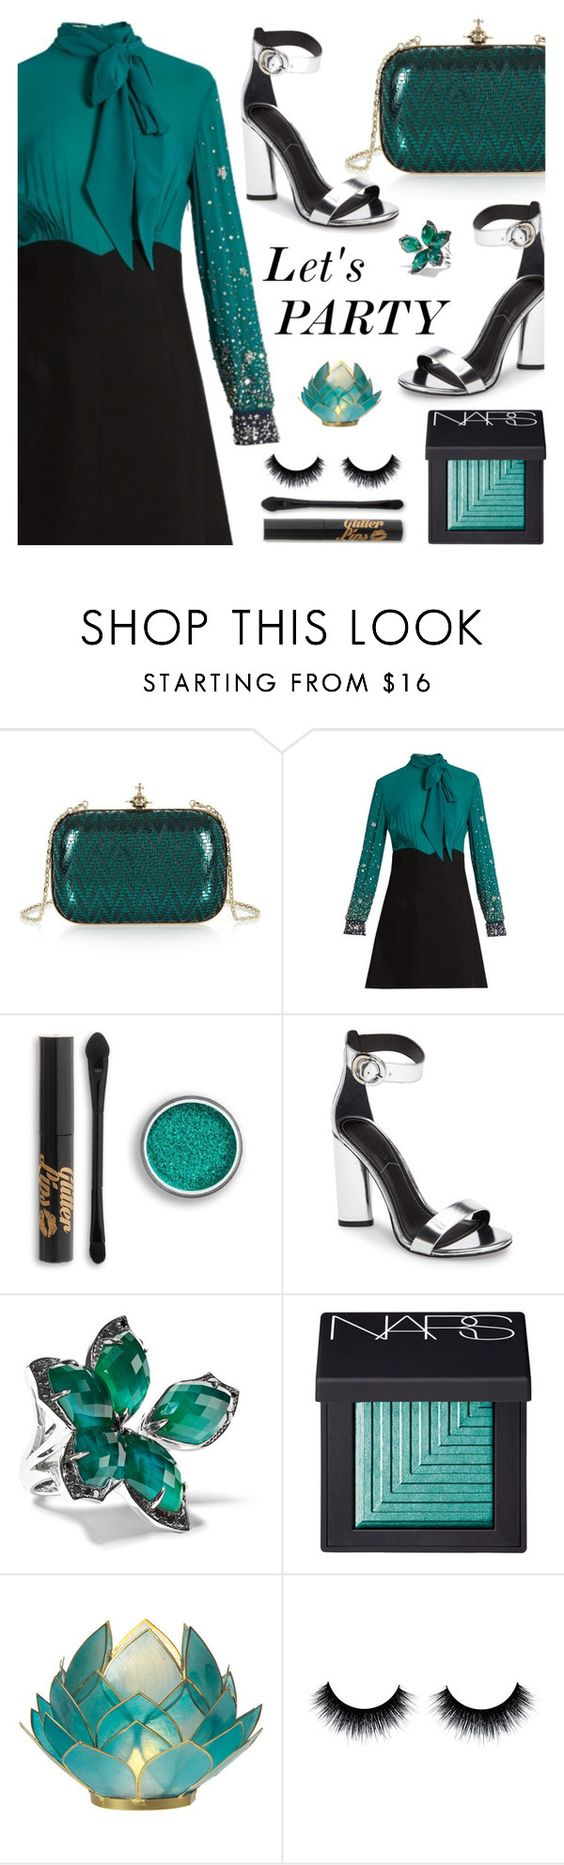 """let's PARTY!!"" by razone ❤ liked on Polyvore featuring Vivienne Westwood, Miu Miu, Kendall + Kylie, Stephen Webster, NARS Cosmetics and Cultural Intrigue"